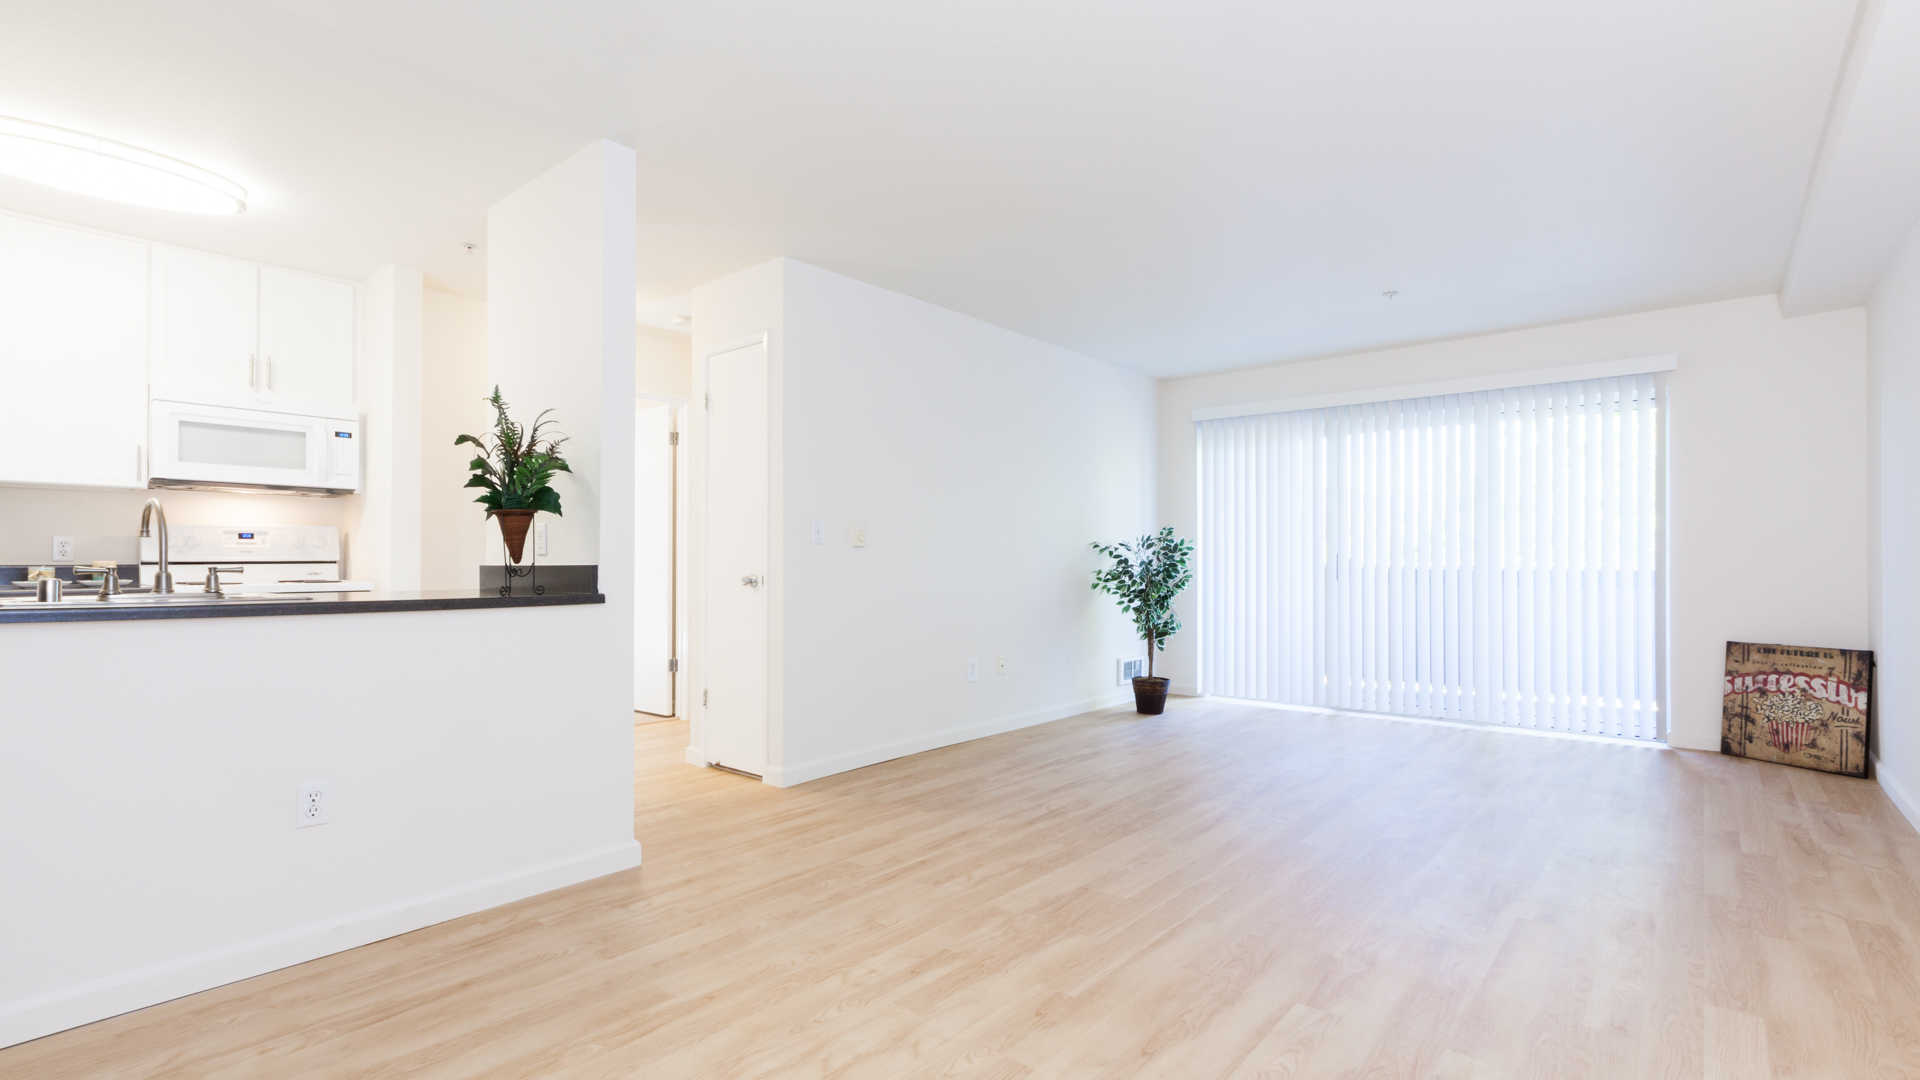 artistry-emeryville-apartments-living-room.jpg